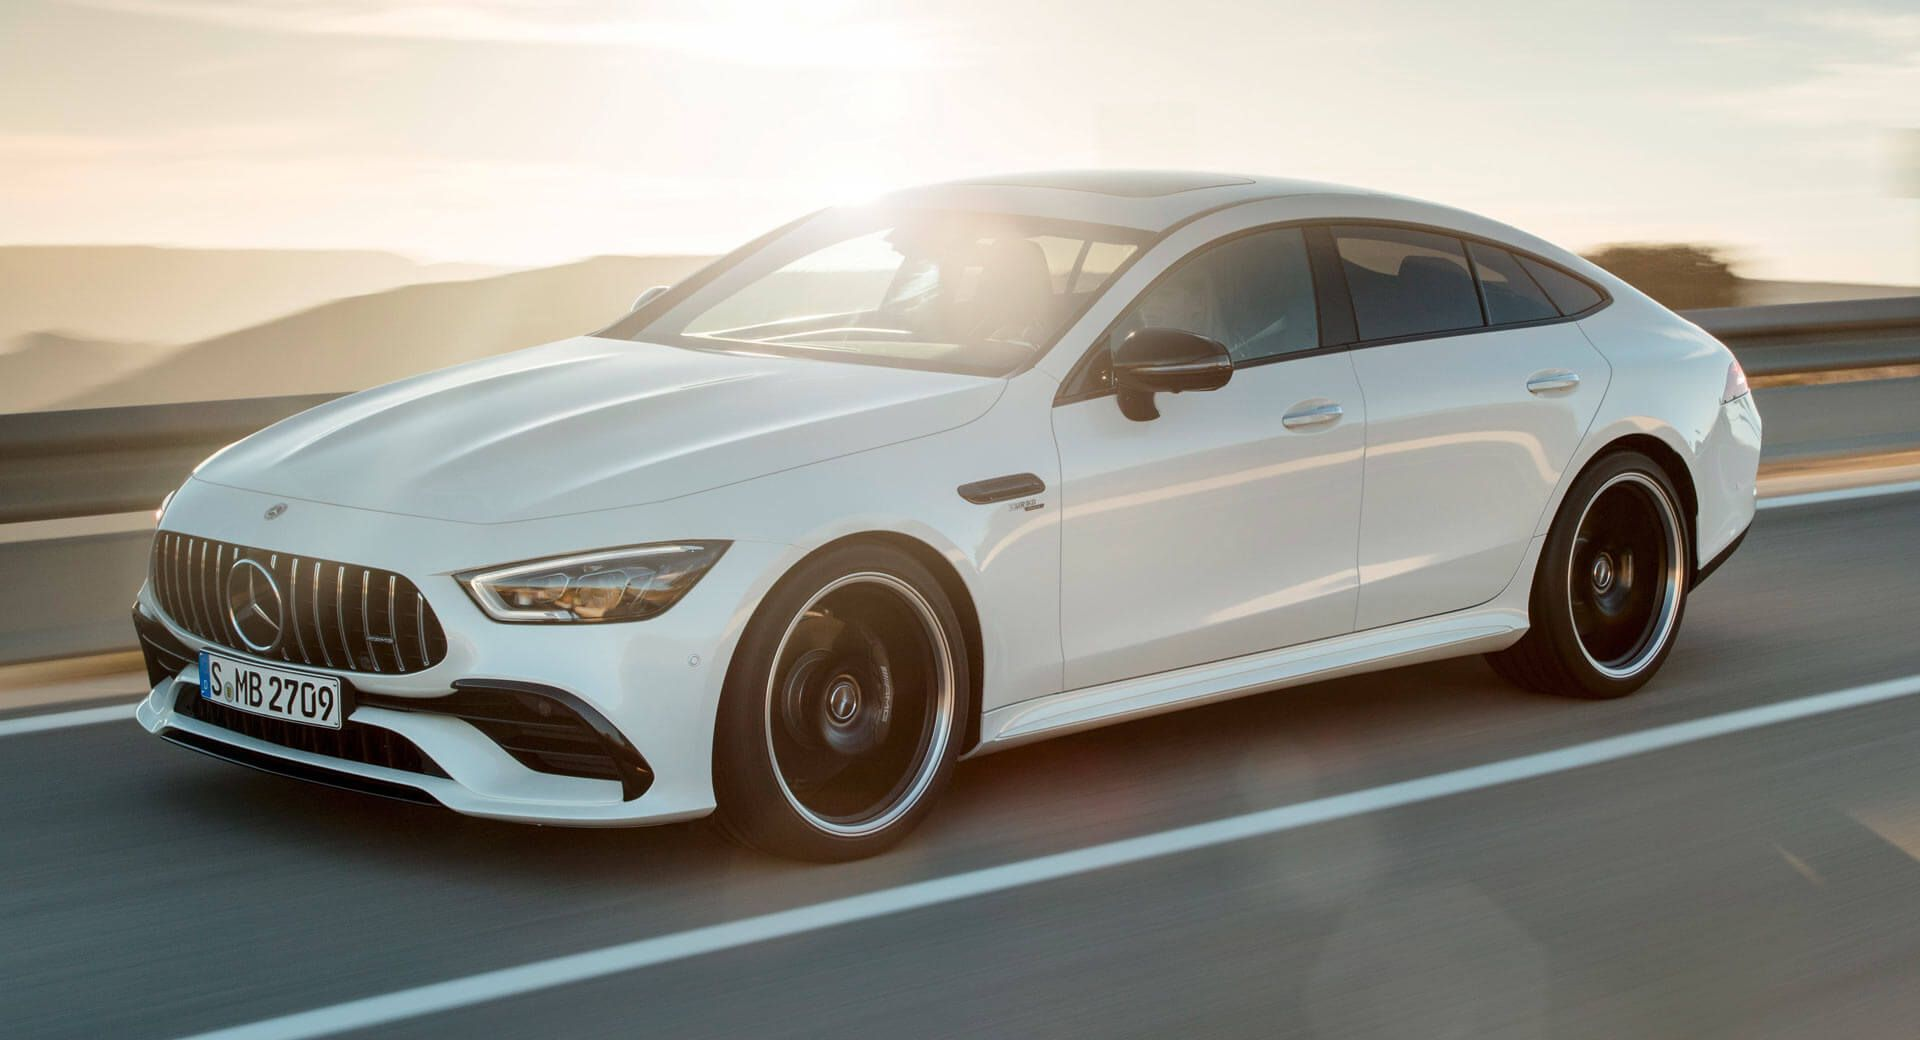 Mercedes Amg Gt 4 Door Coupe Hybrid Might Arrive In 2020